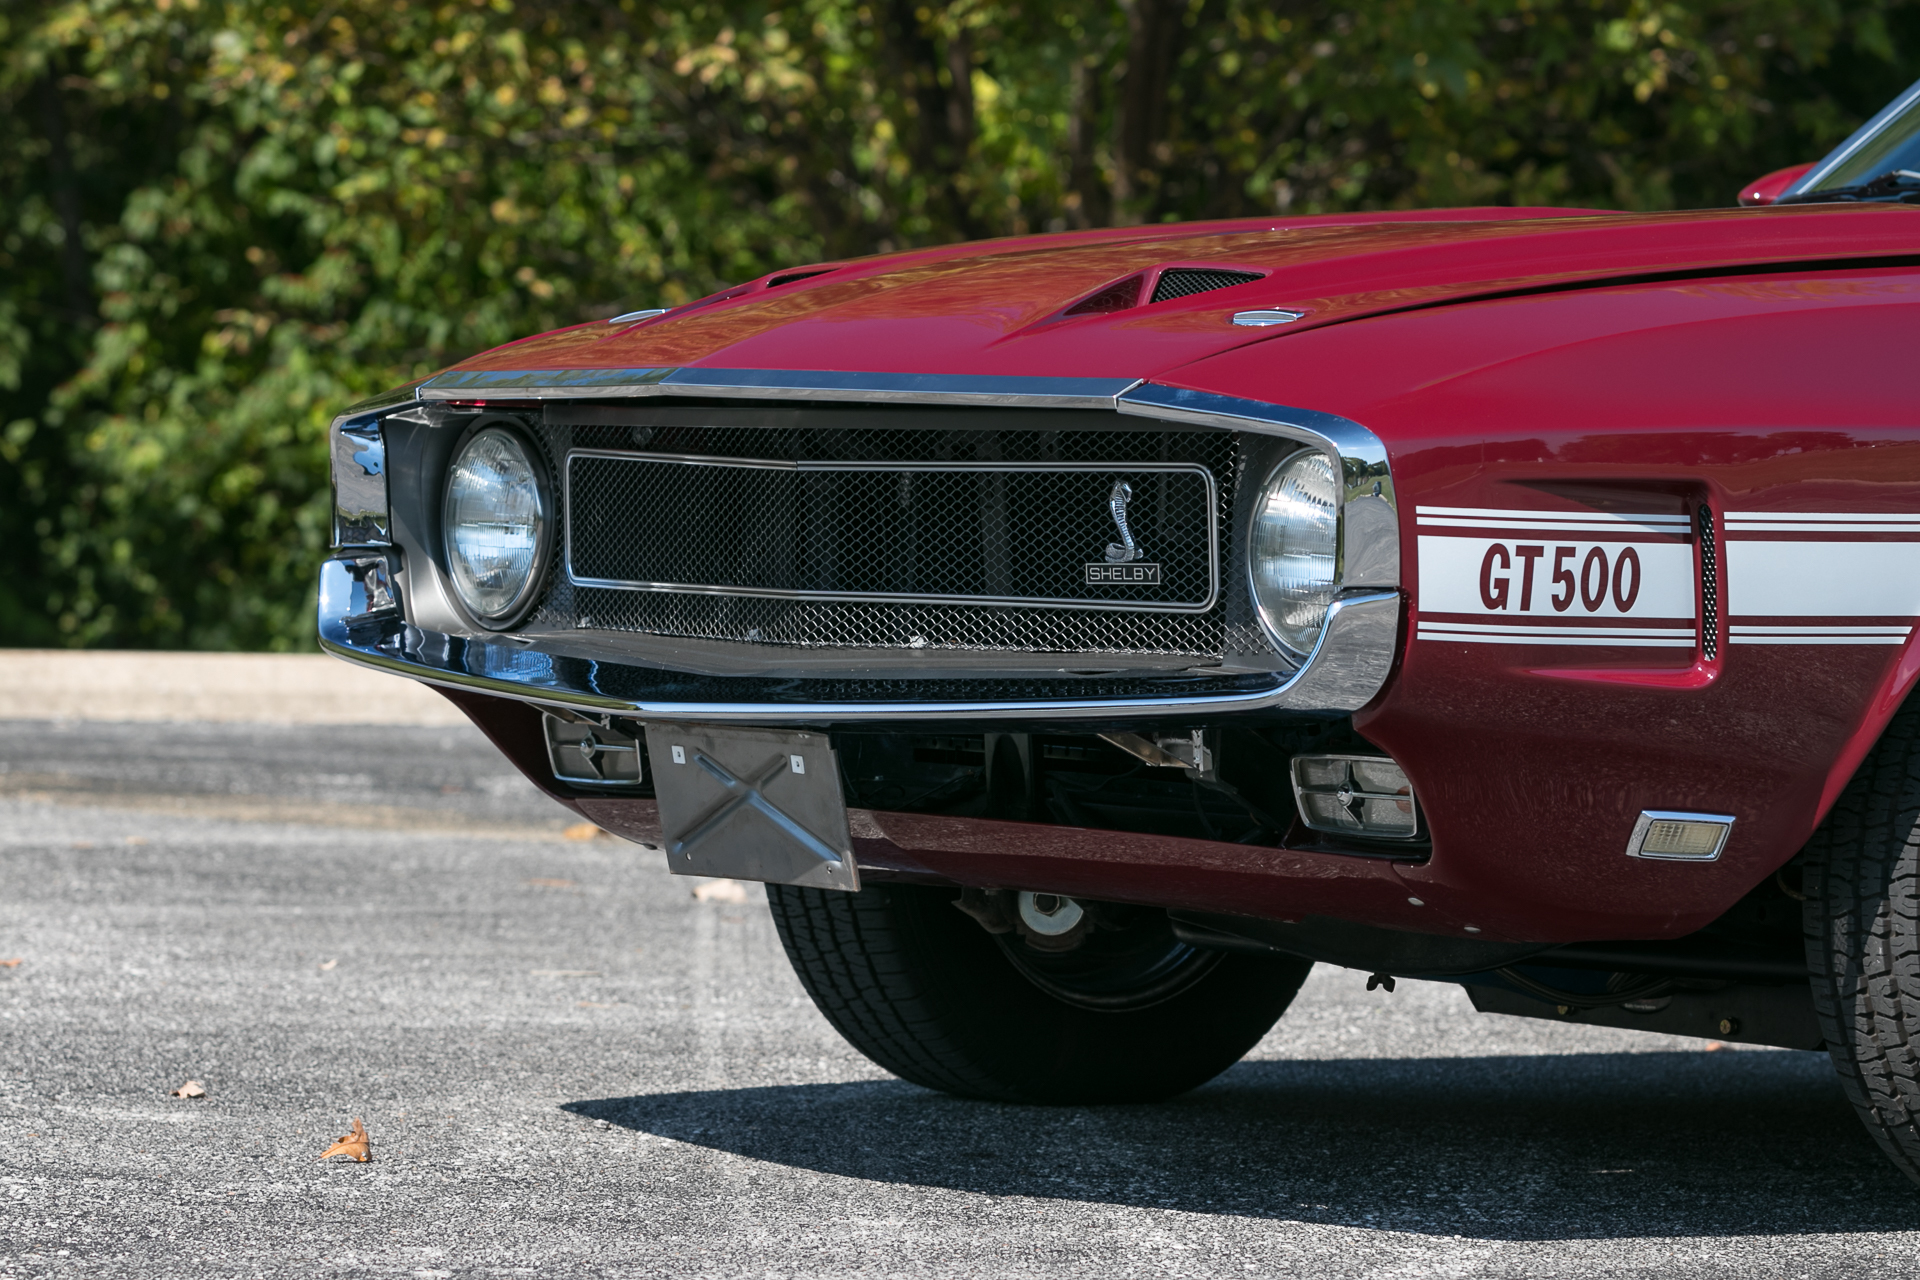 1969 Ford Mustang Fast Lane Classic Cars Gt500